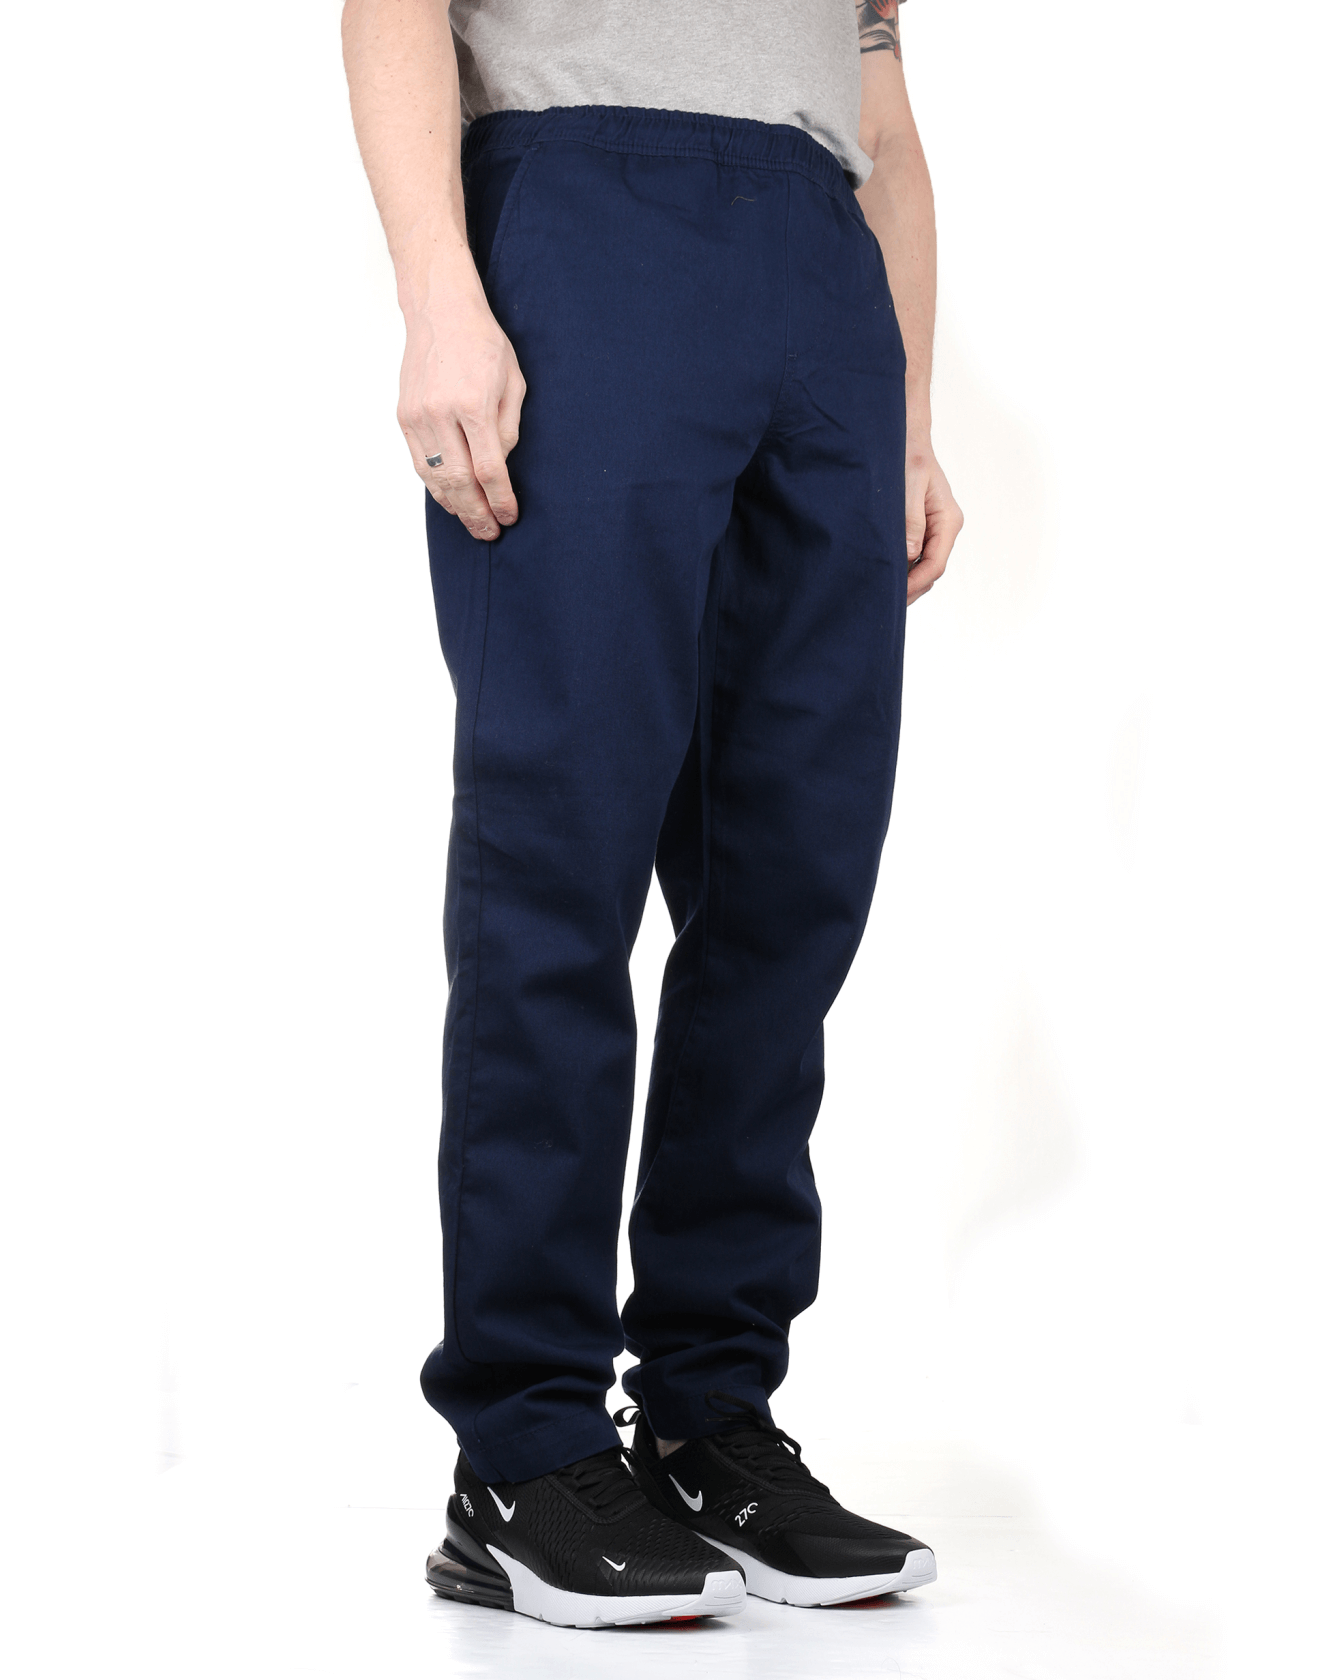 Lyle & Scott Relaxed Trousers - Navy L TR802VZ99L 5054783242374 Lyle & Scott Chinos & Non-Denim Pants Lyle & Scott Relaxed Trousers - Navy - Jeans and Street Fashion from Jeanstore